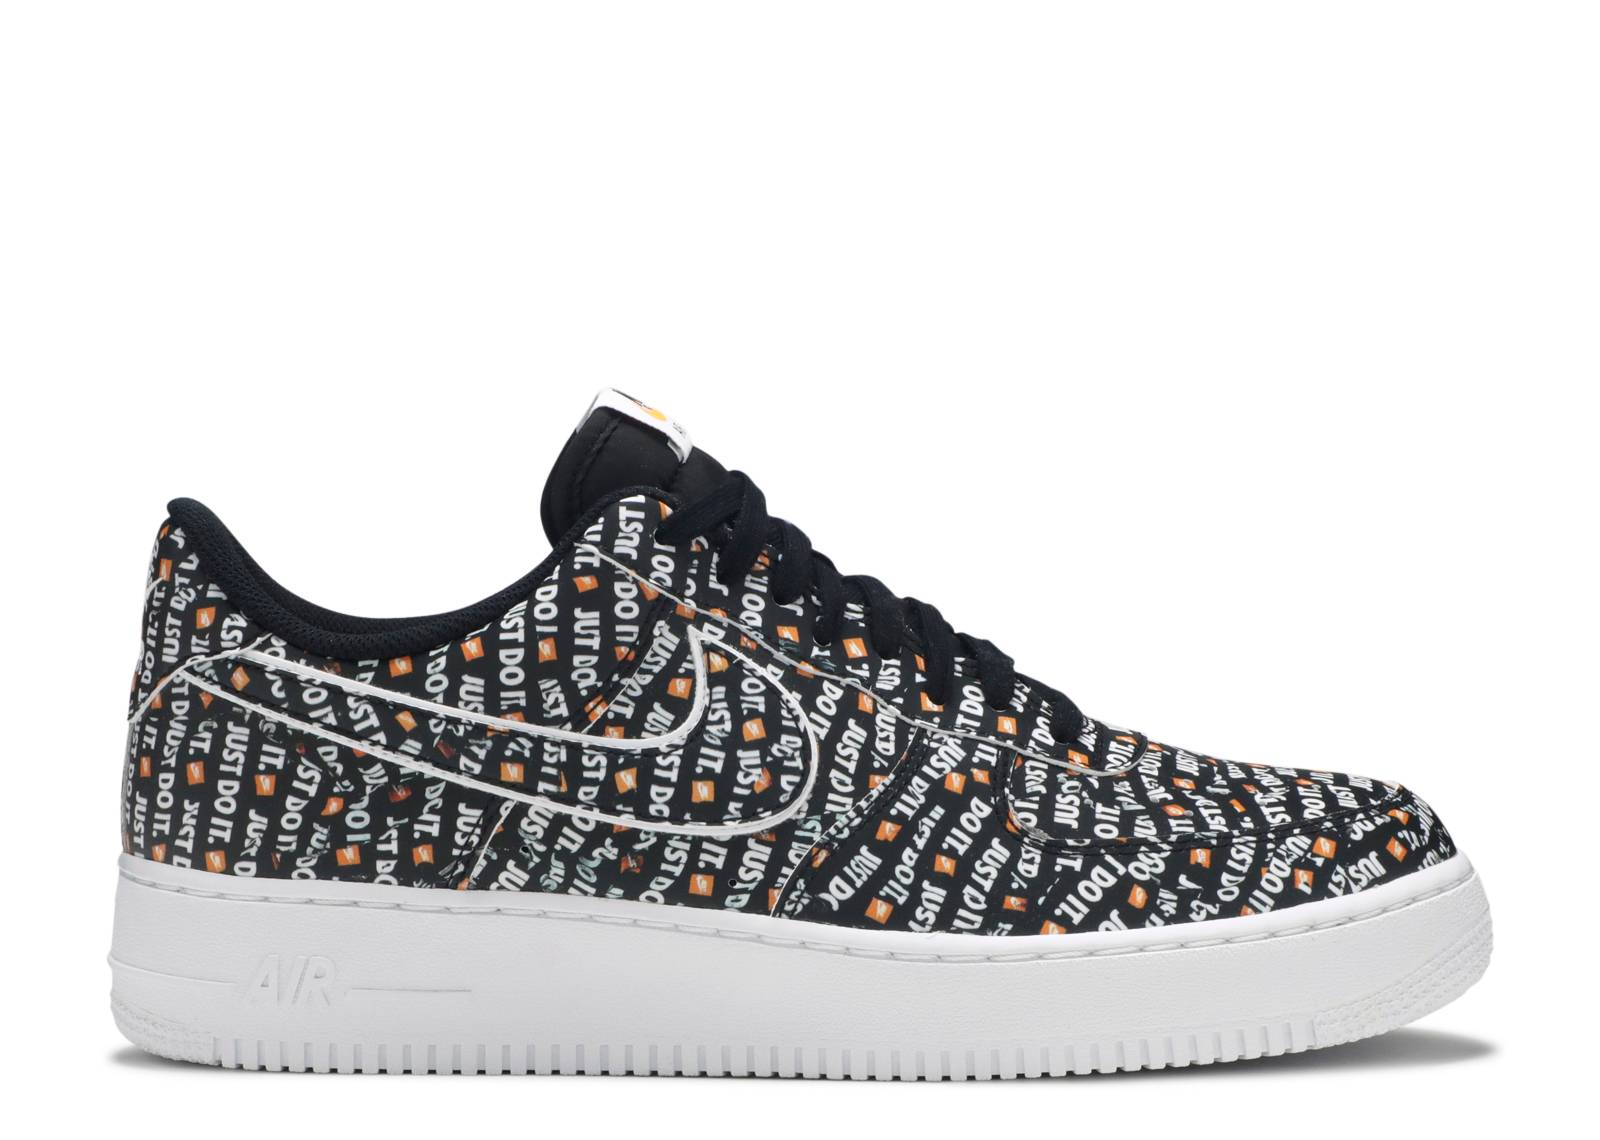 online store 1d49b 71782 air force 1 '07 lv8 jdi